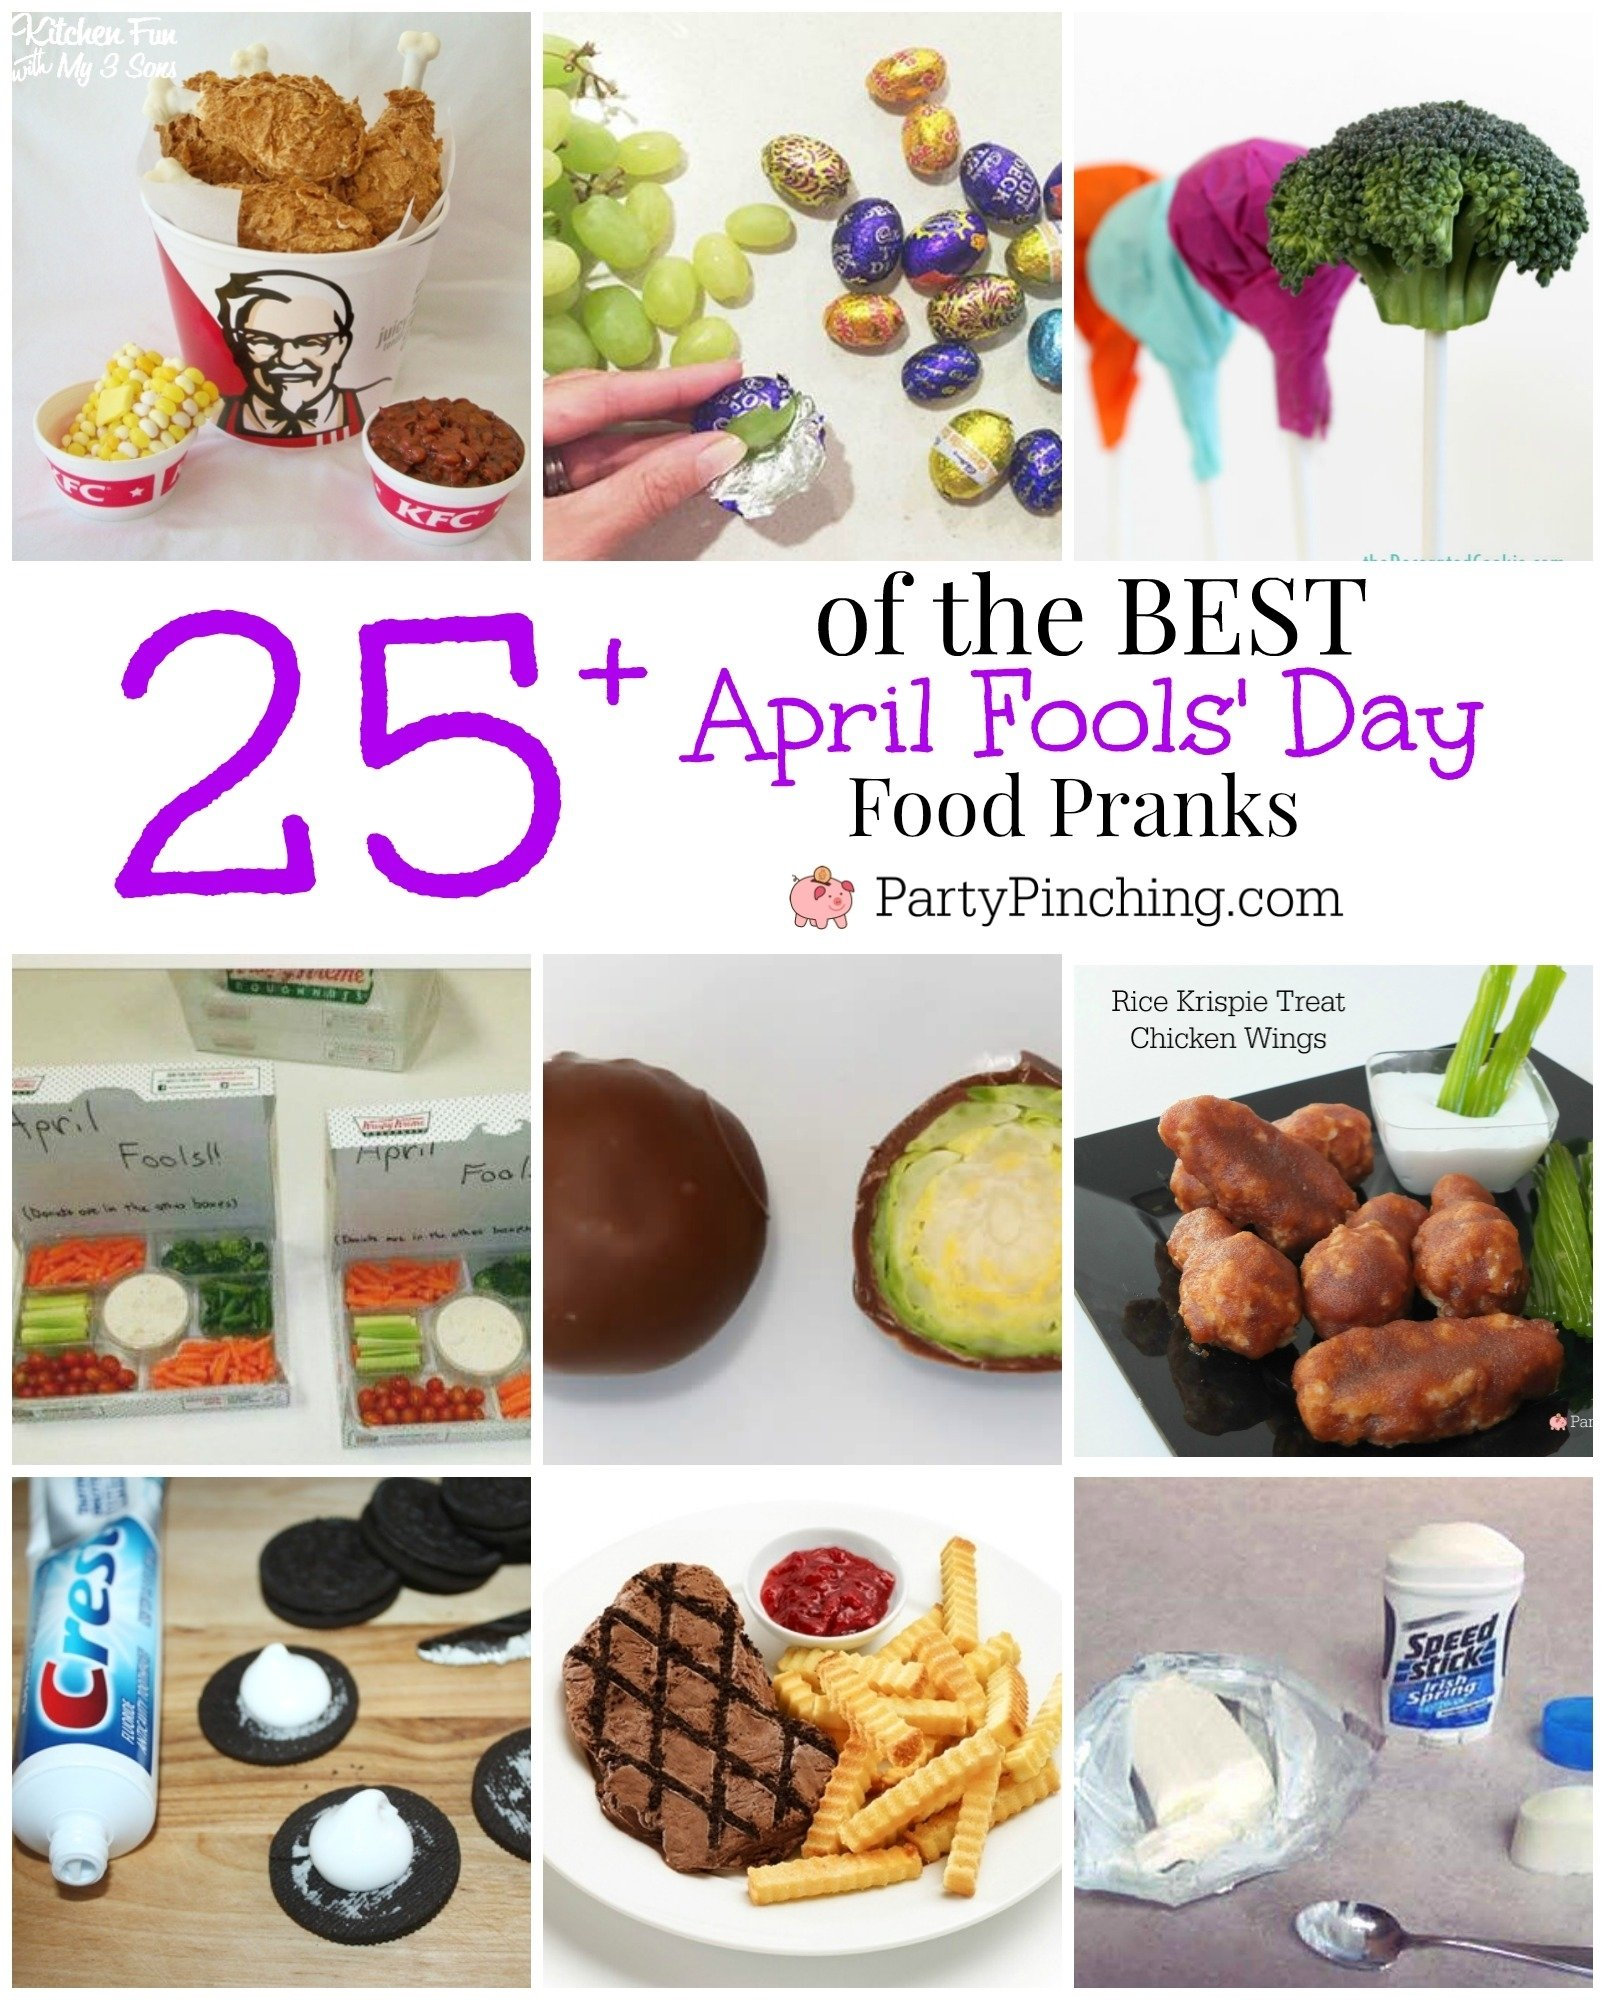 10 Attractive April Fools Day Party Ideas best april fools day food pranks party pinching 2020